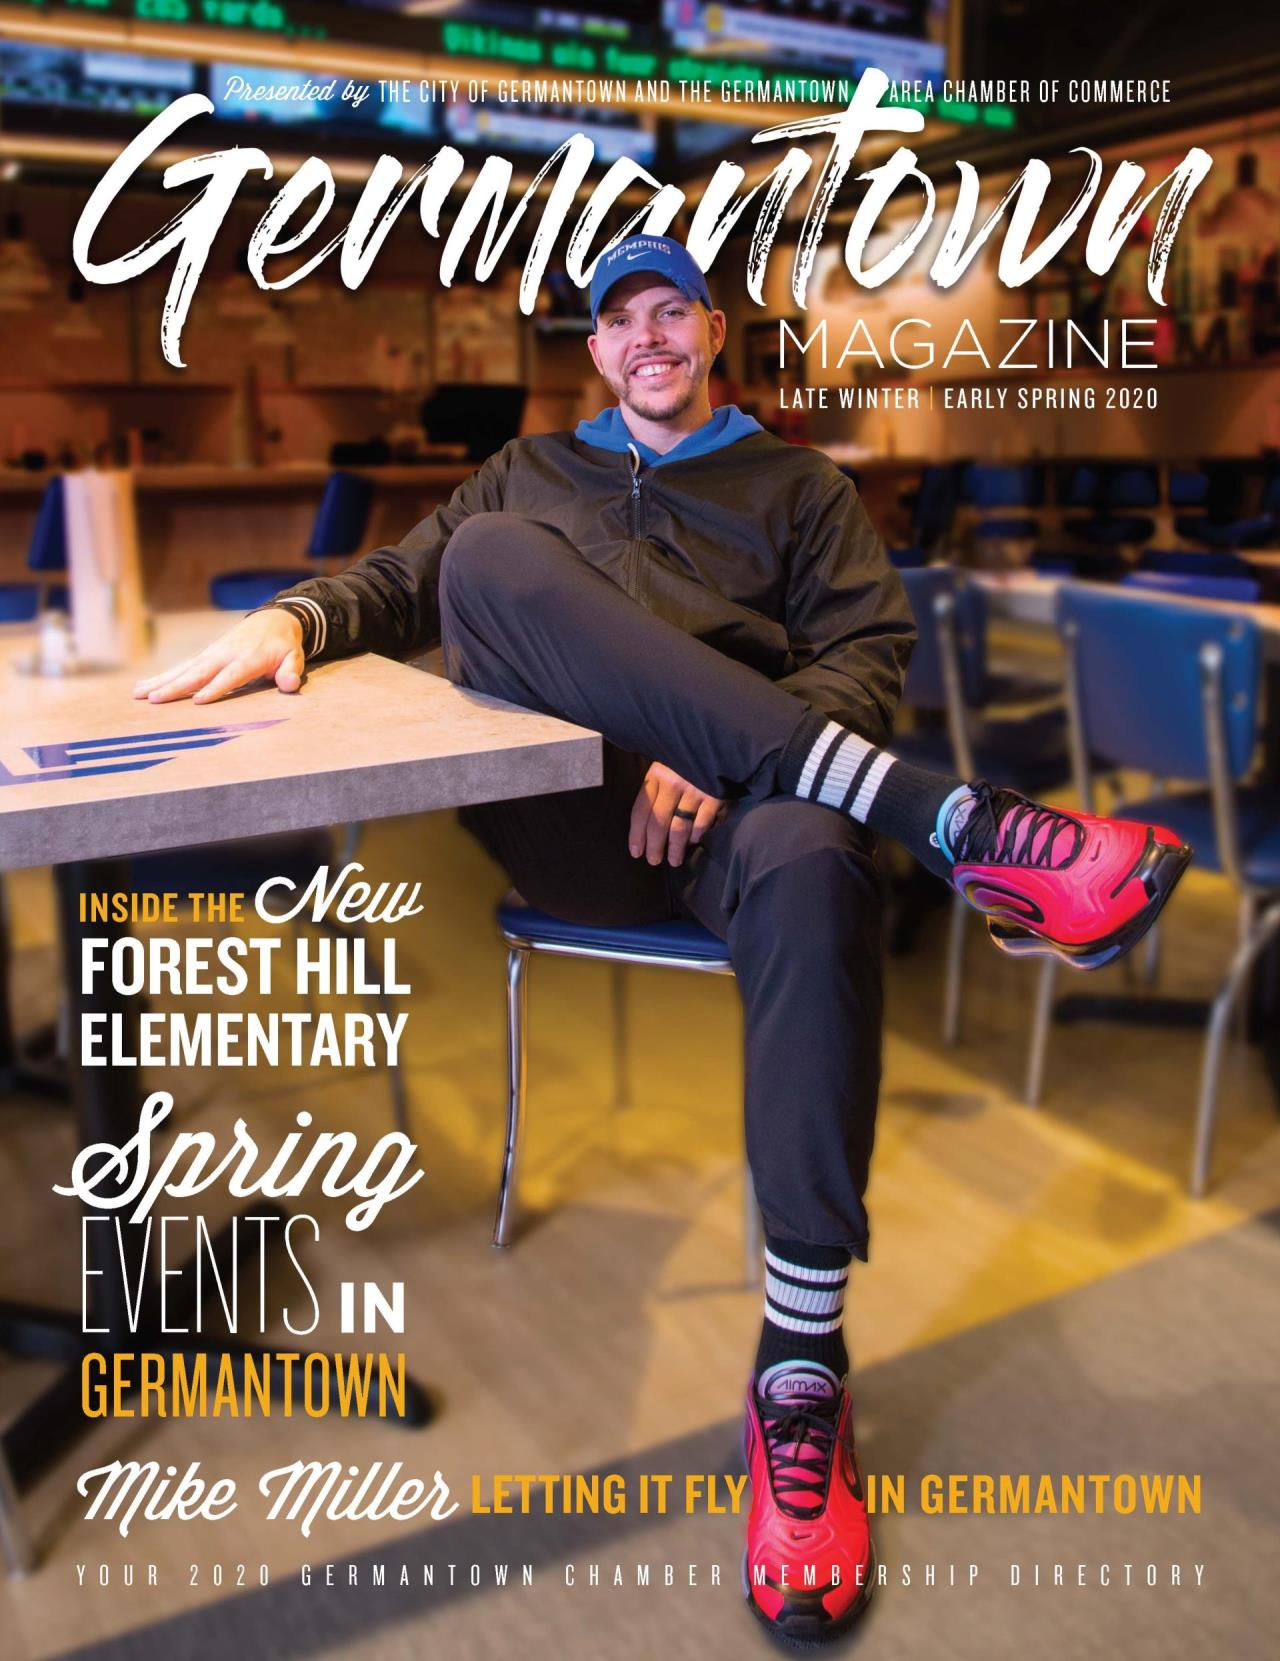 "Germantown Magazine Winter Spring 2020 magazine cover featuring Mike Miller. Featured stories include ""Inside the New Forest Hill Elementary, Spring Events in Germantown and Mike Miller Letting it Fly in Germantown."""